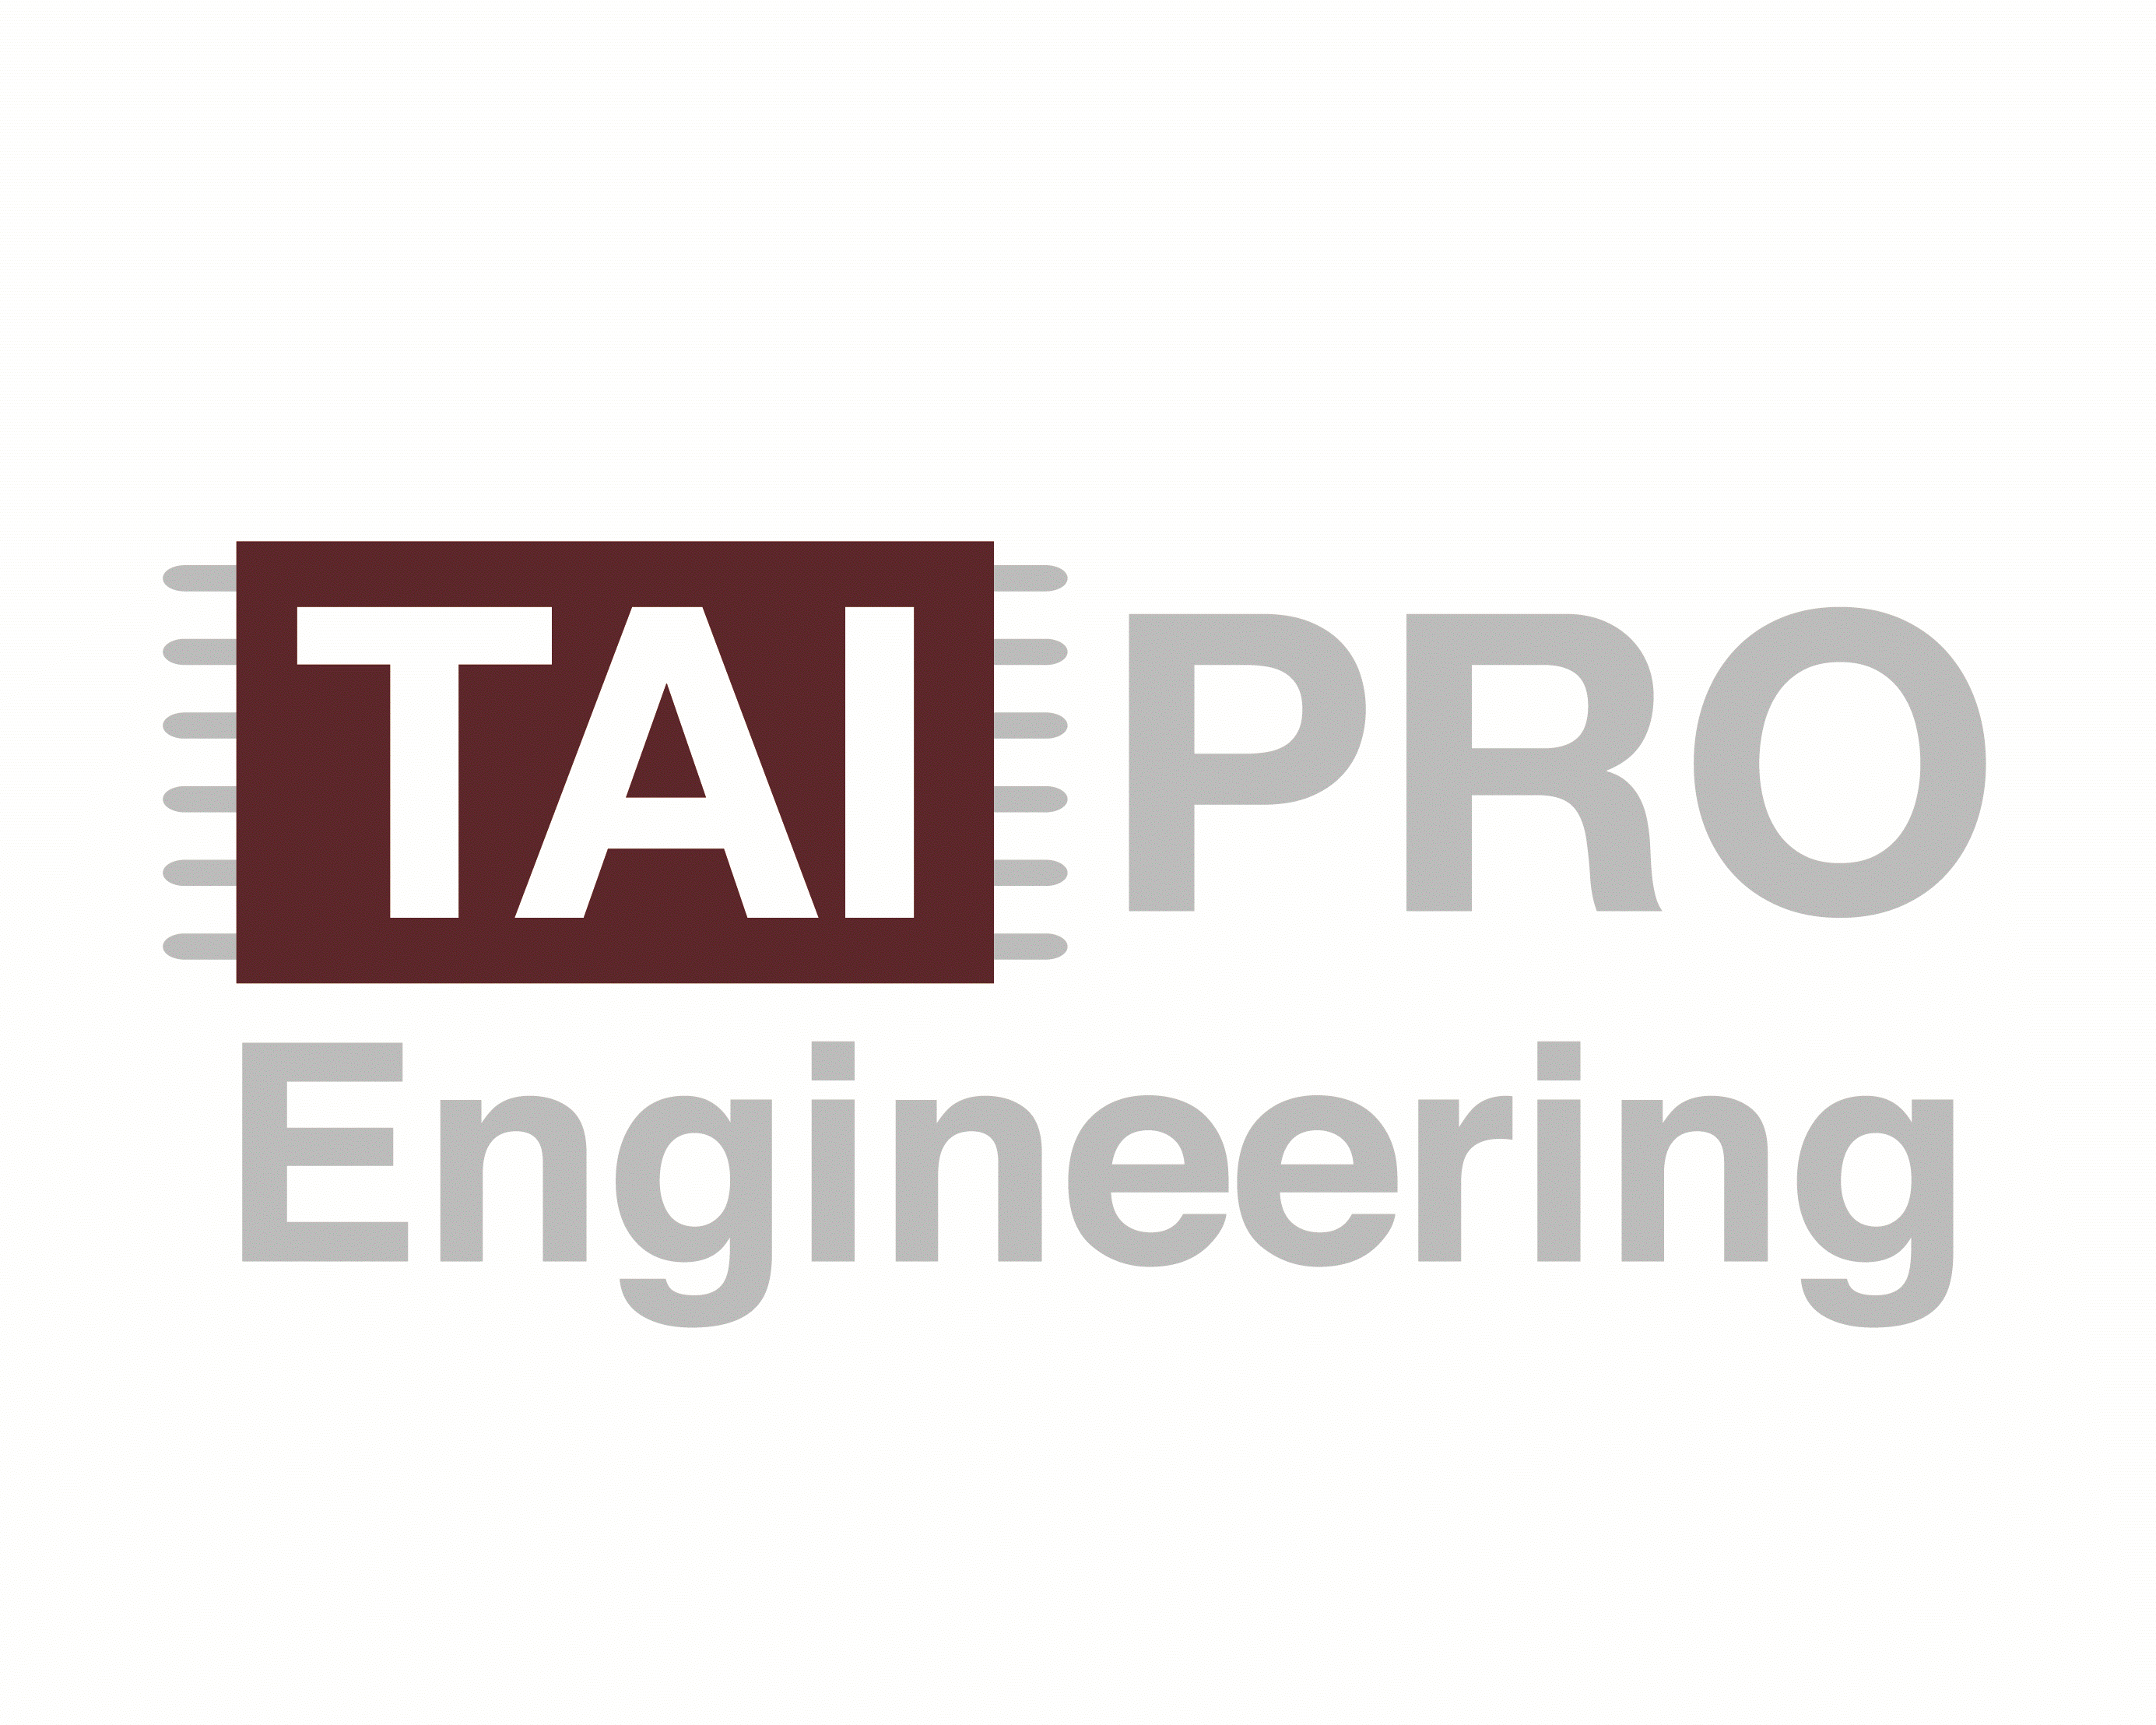 TaiPro Engineering